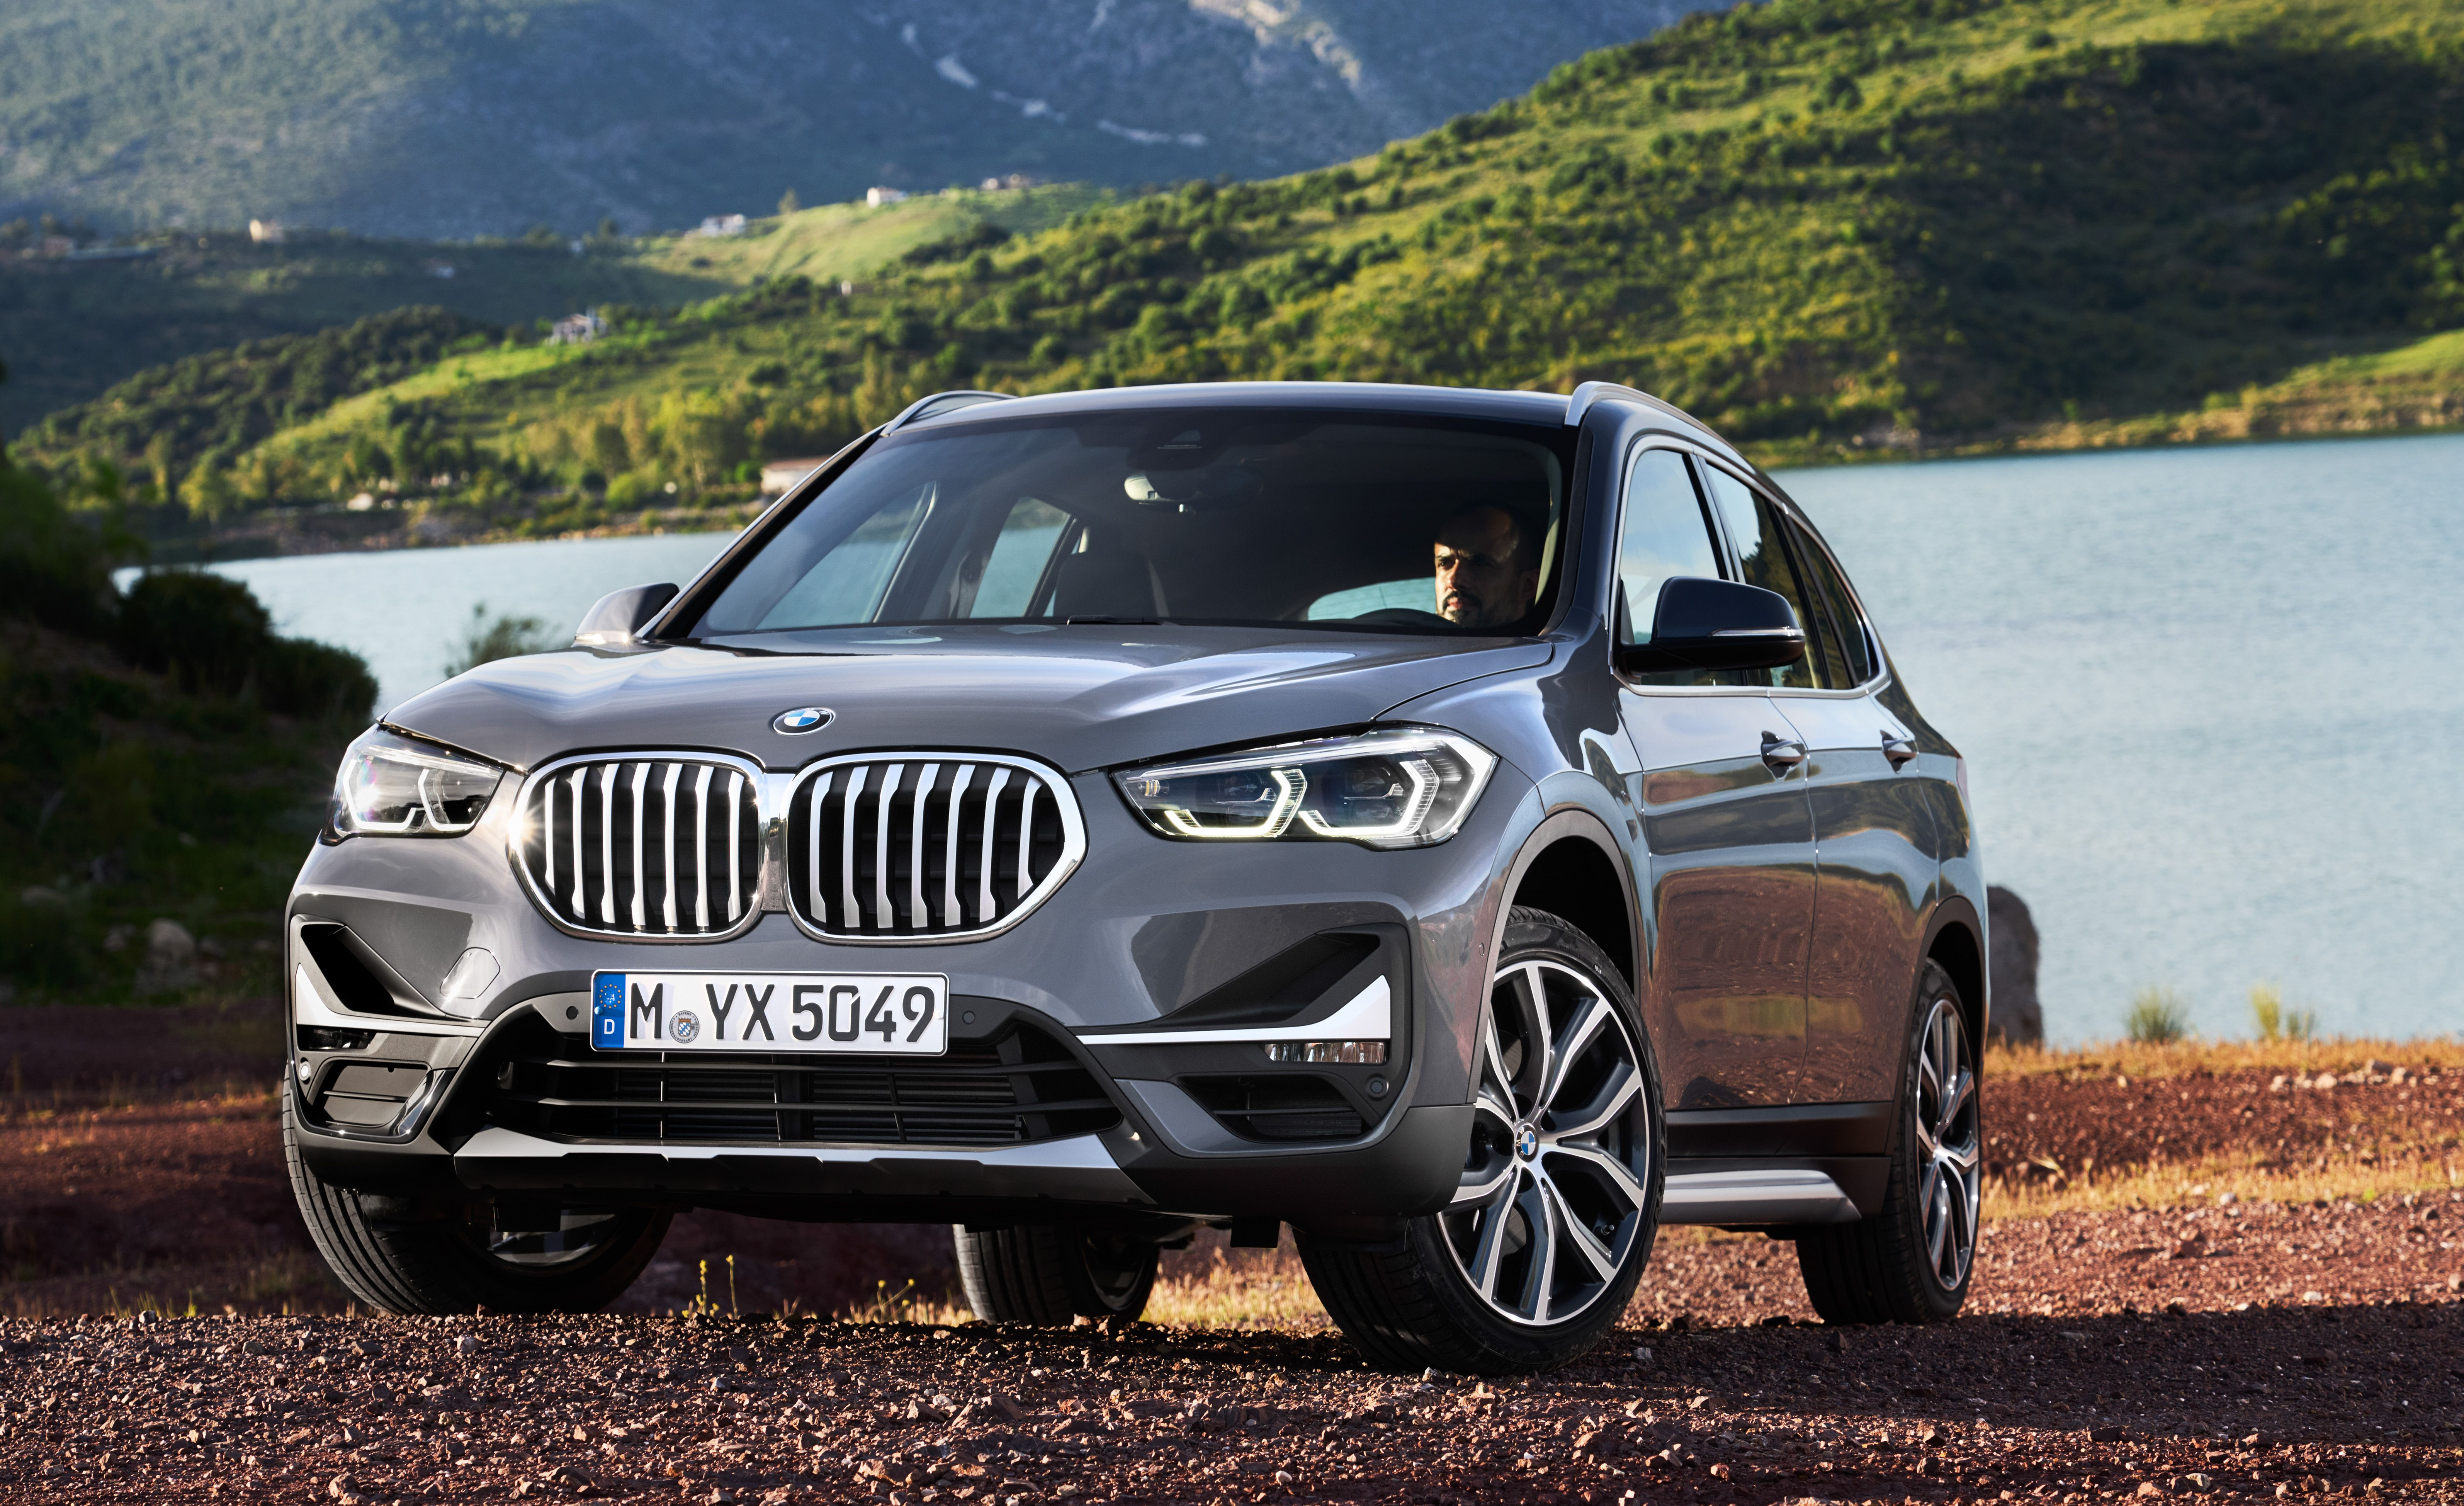 2020 Bmw X1 Crossover Bigger Grille And Standard Screen Price